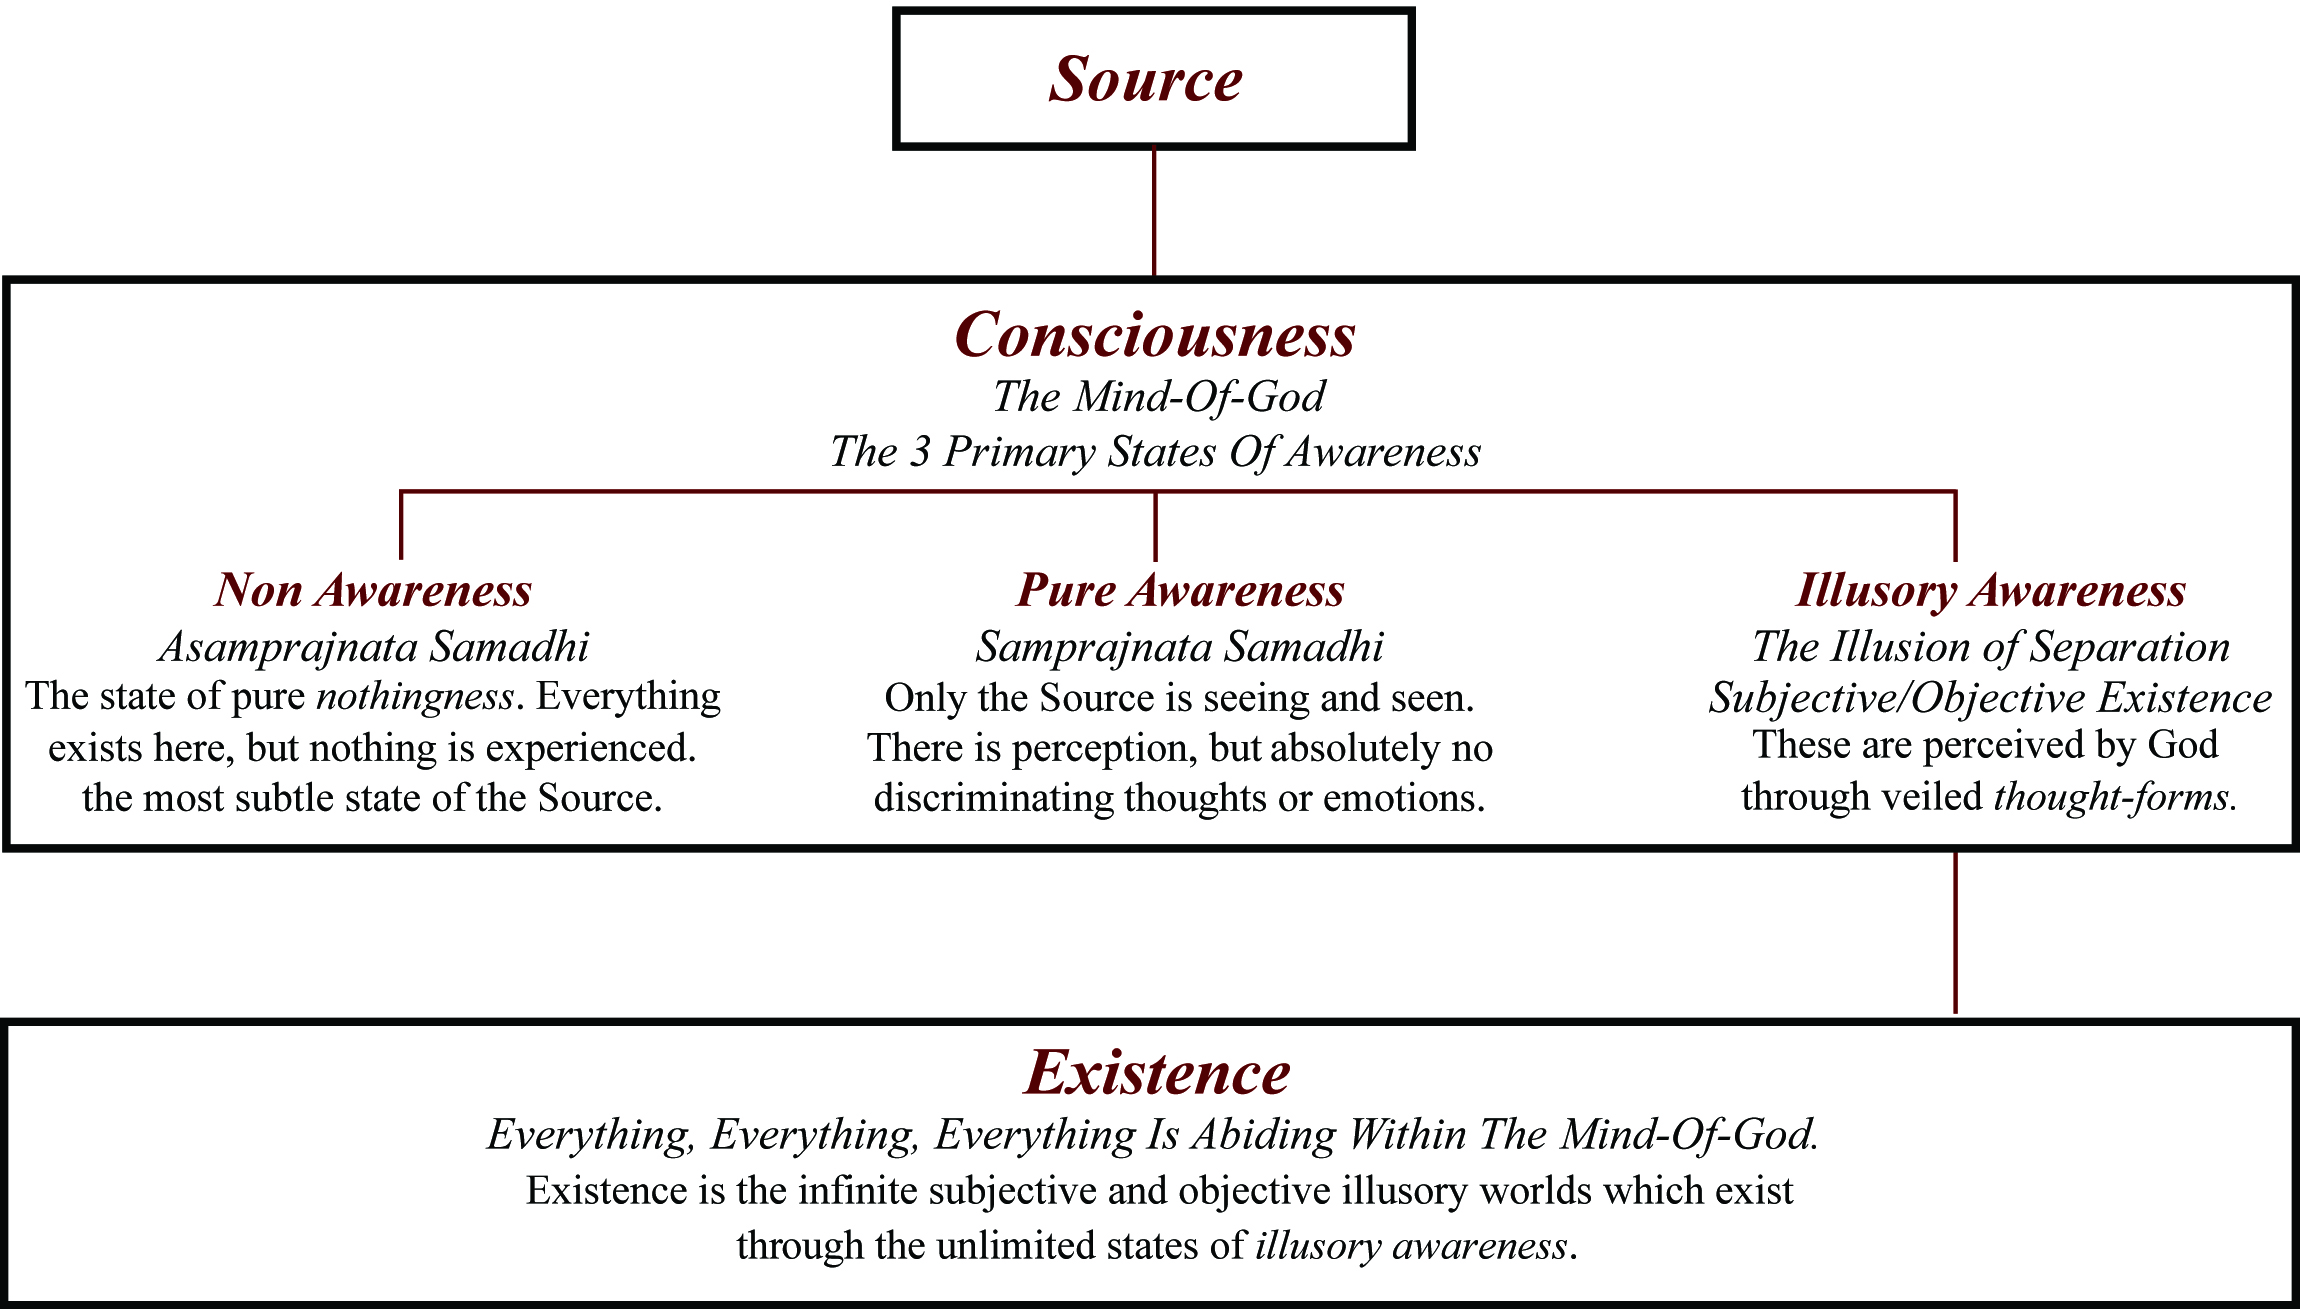 The Three Foundational Principles of the Mystic 7 and Source Consciousness